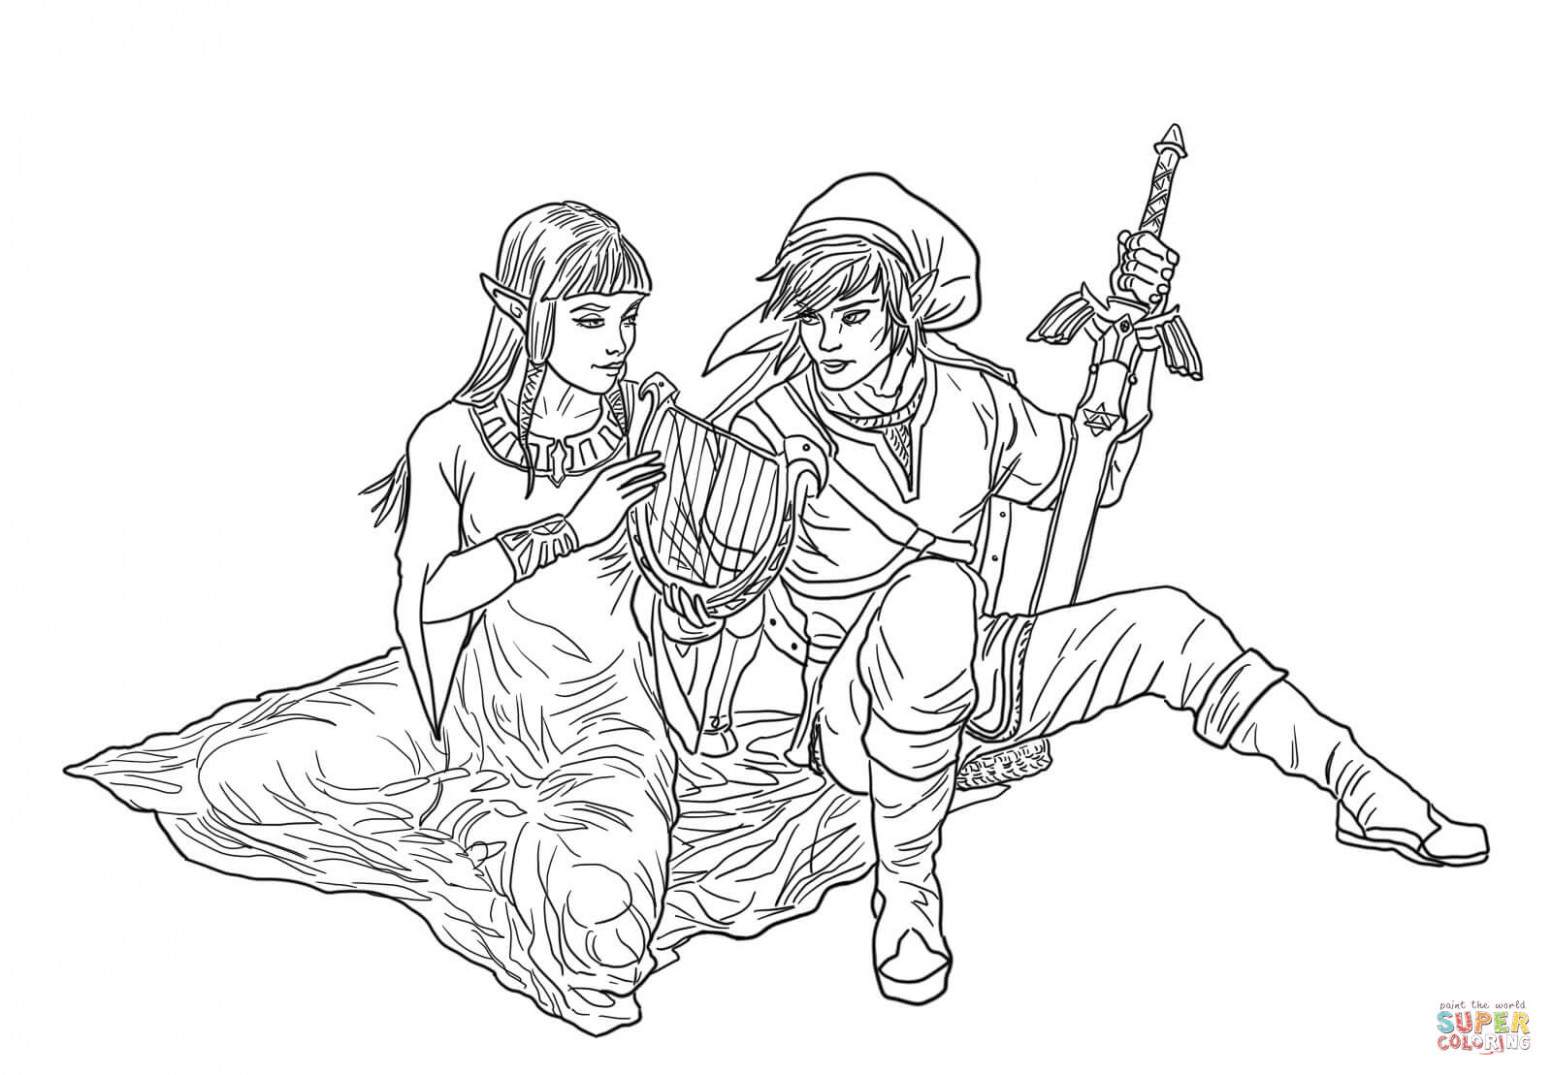 Link and Zelda coloring page | Free Printable Coloring Pages – zelda coloring book